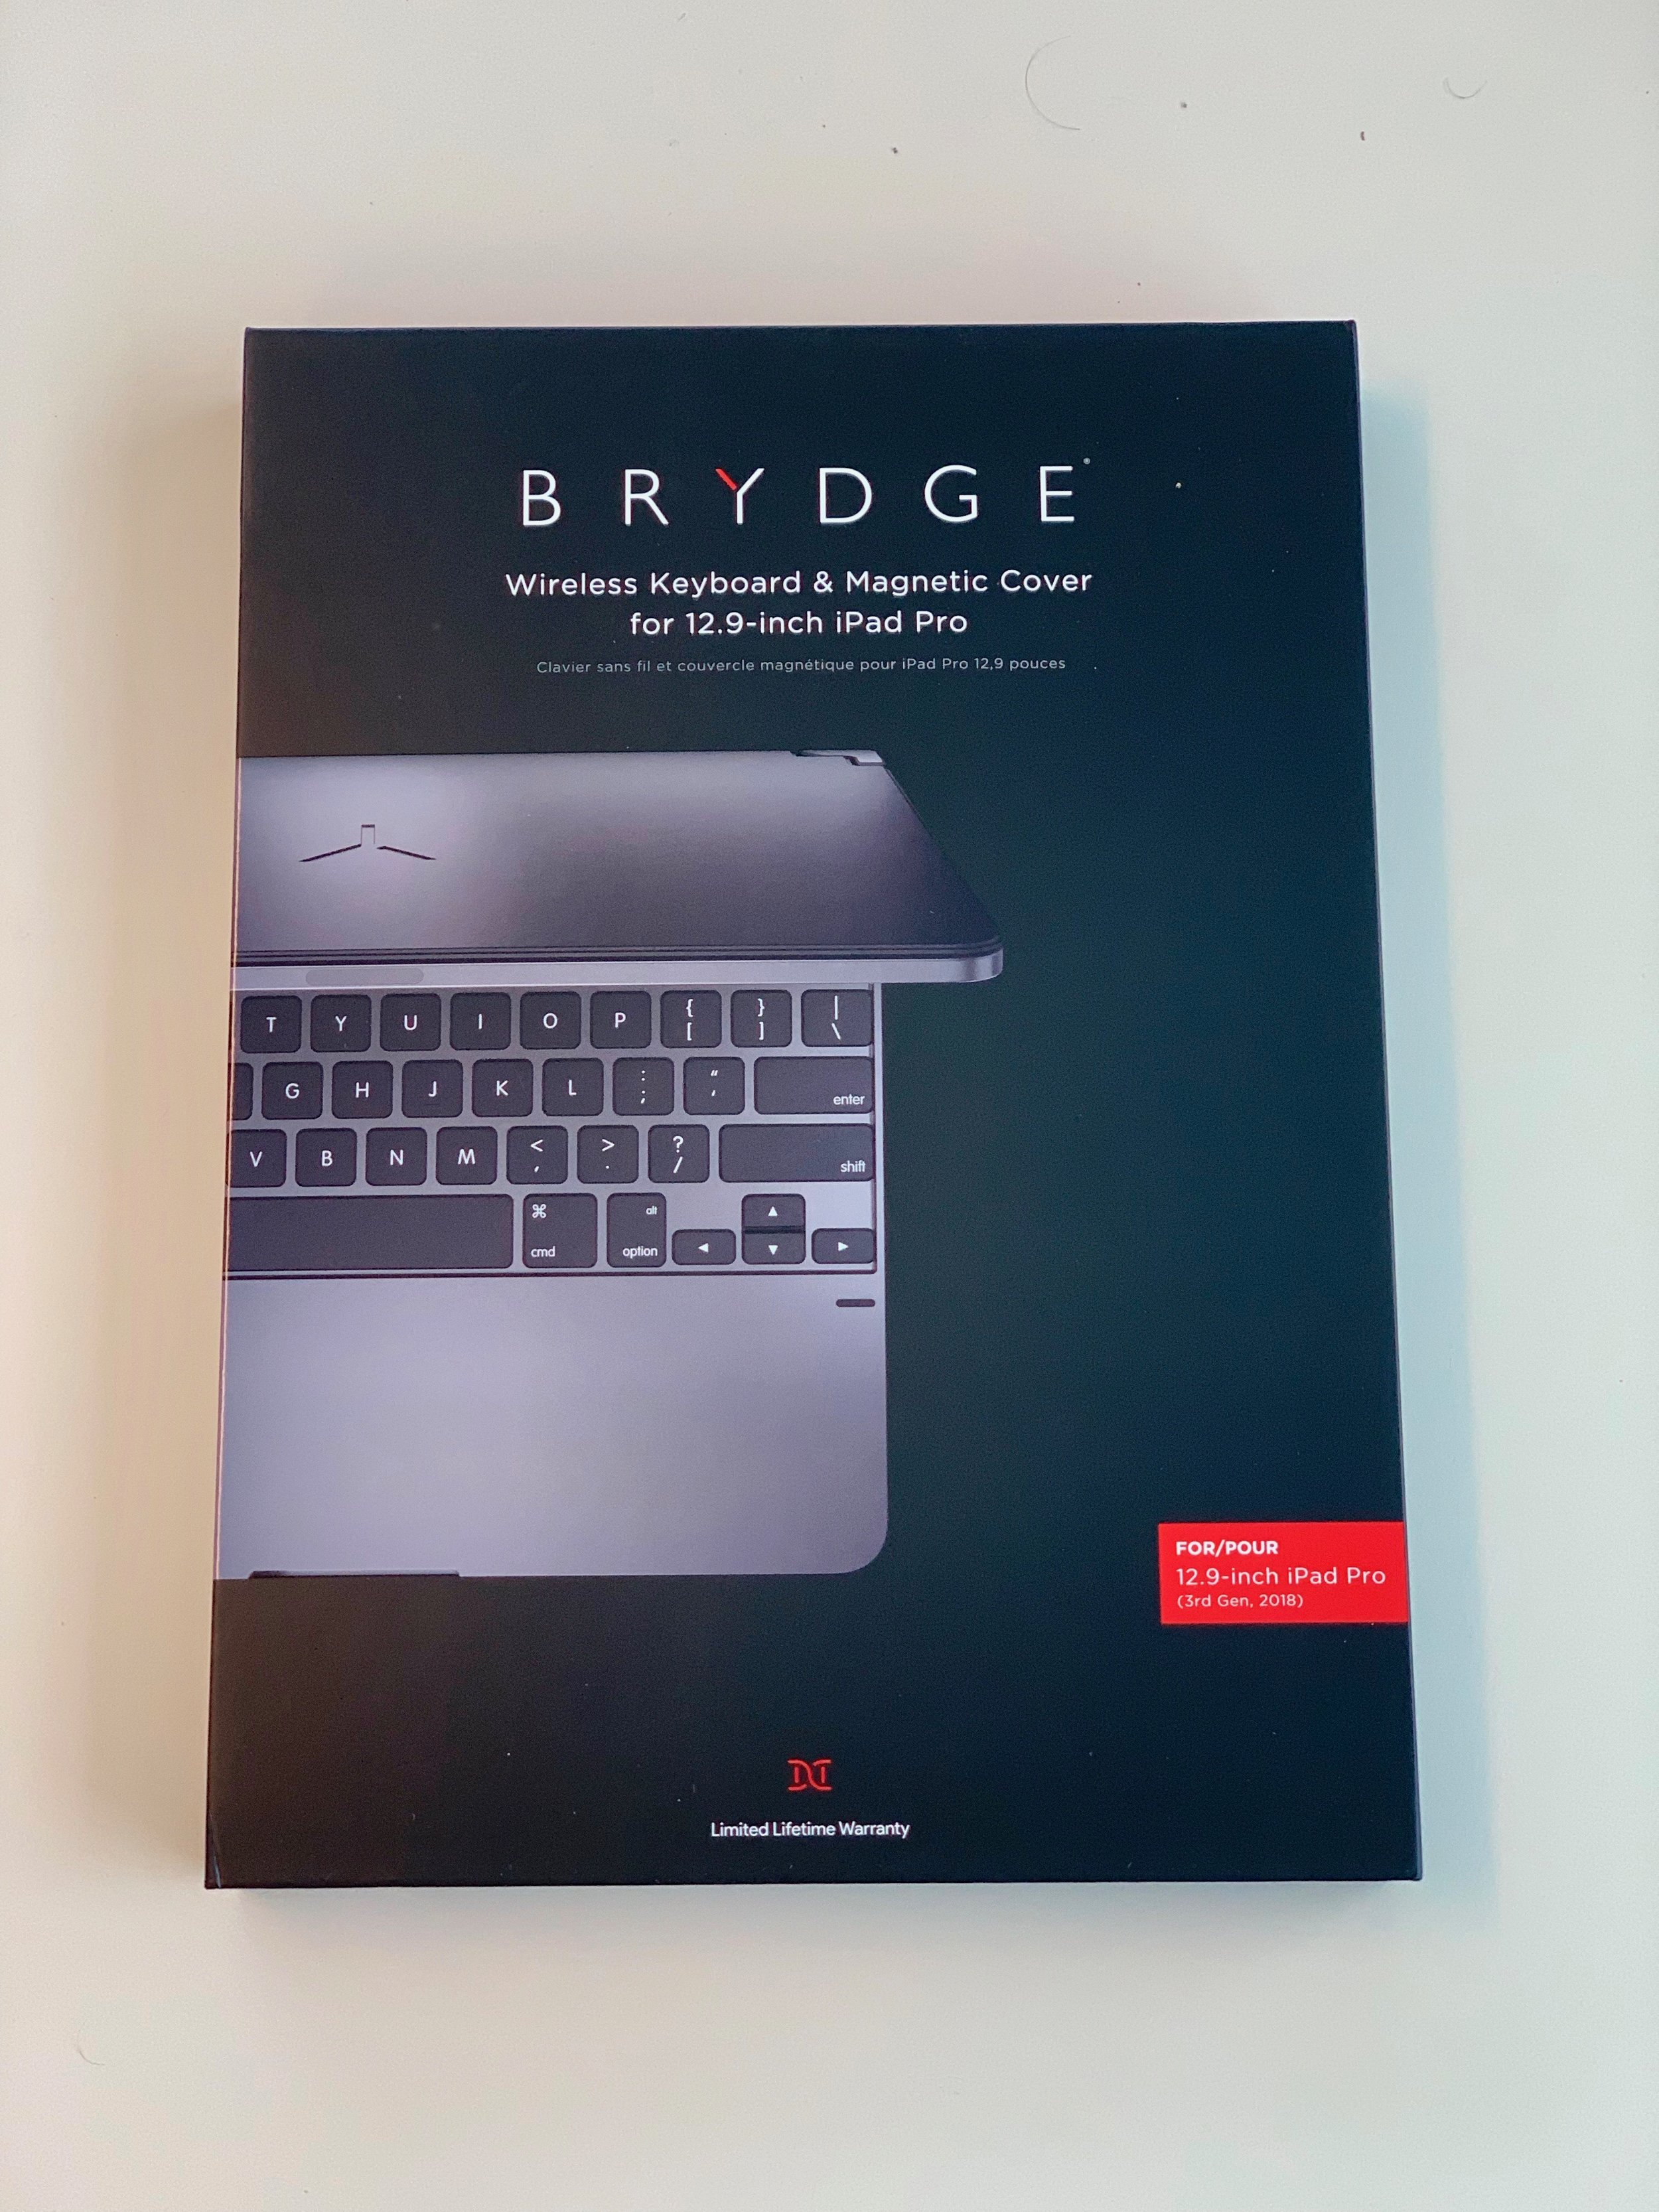 Even the box for the Brydge Pro is nice! Photo by Desmond Fuller